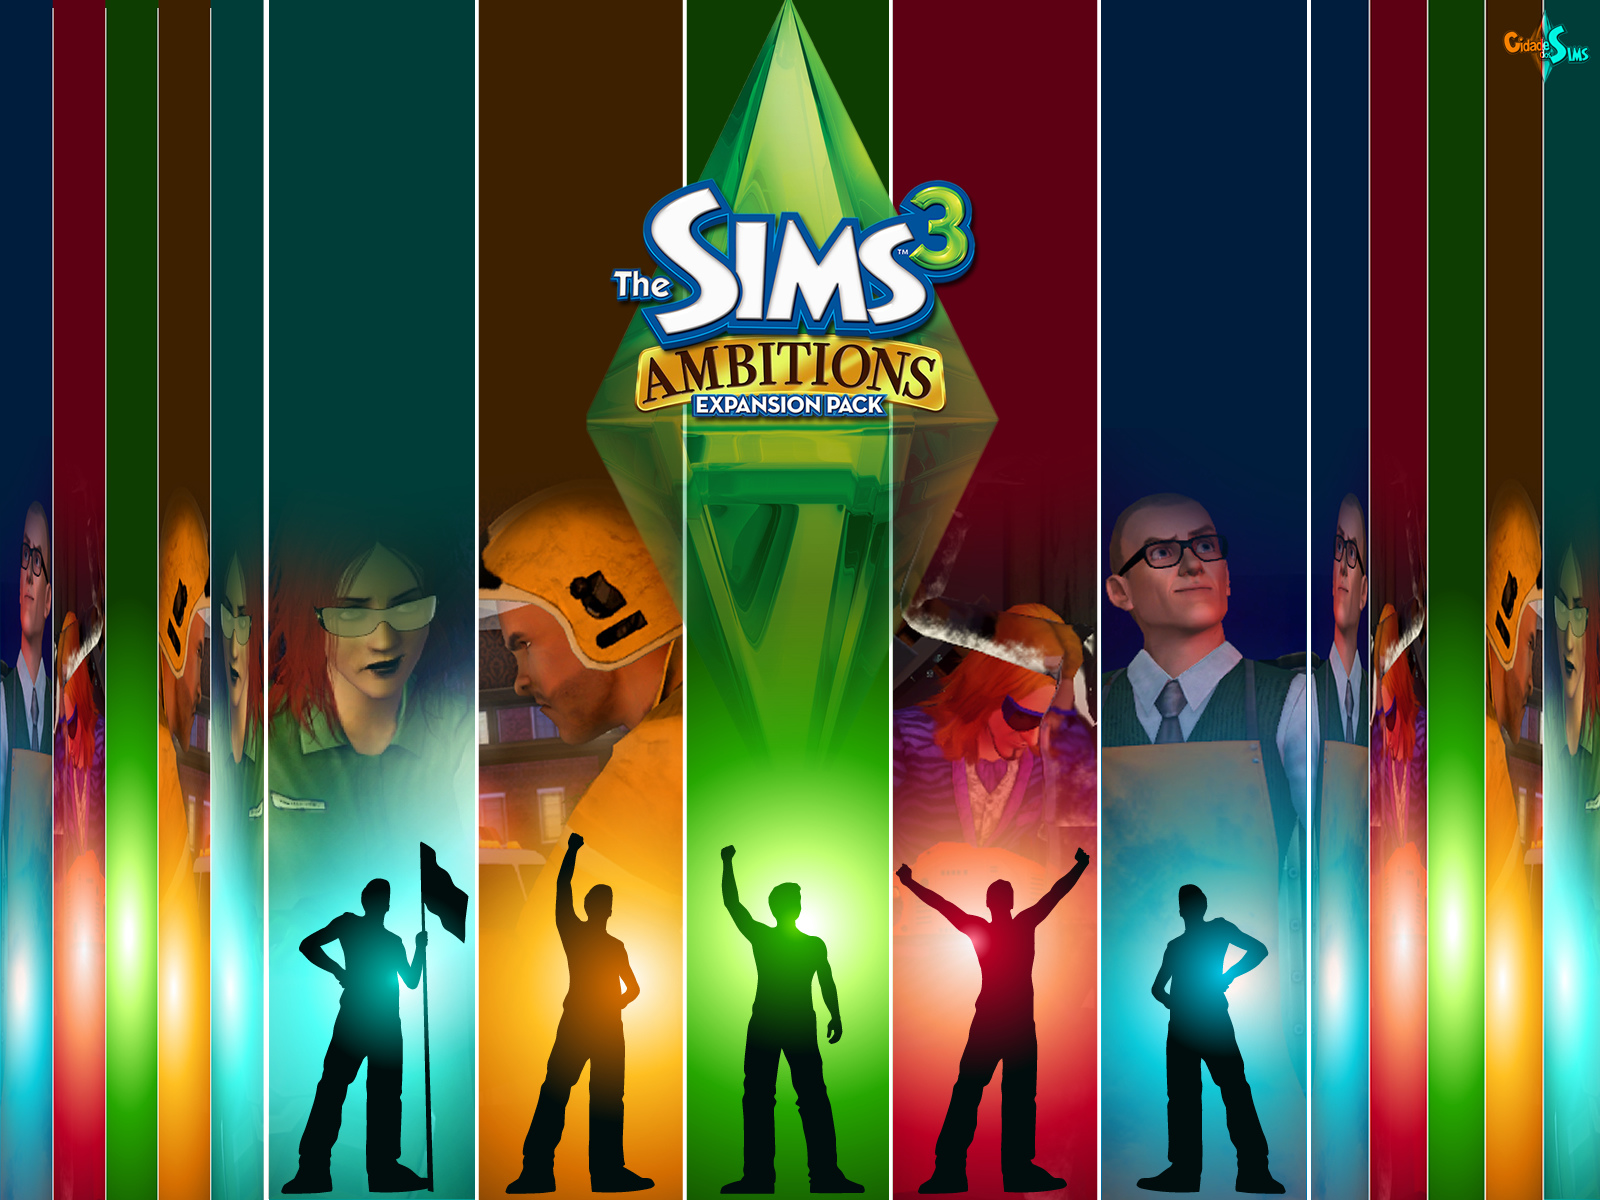 The sims 3 ambitions wallpaper   The Sims 3 Ambitions Wallpaper 1600x1200